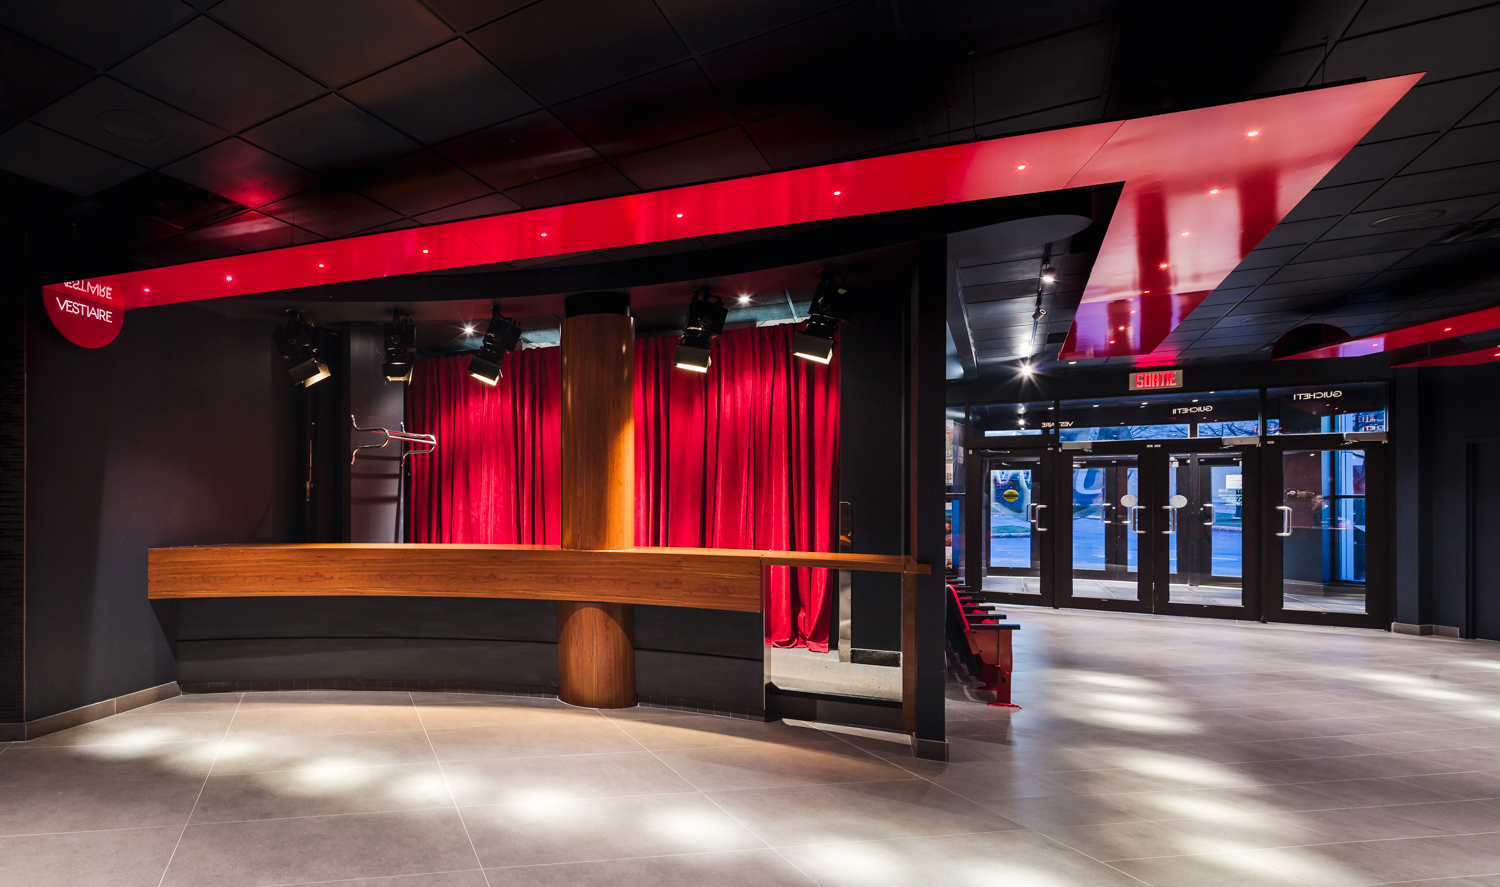 Cloakroom of a theater with red velvet curtains in the background. Counter and column covered with walnut. Red painted metal signage hanging with luminous inscription